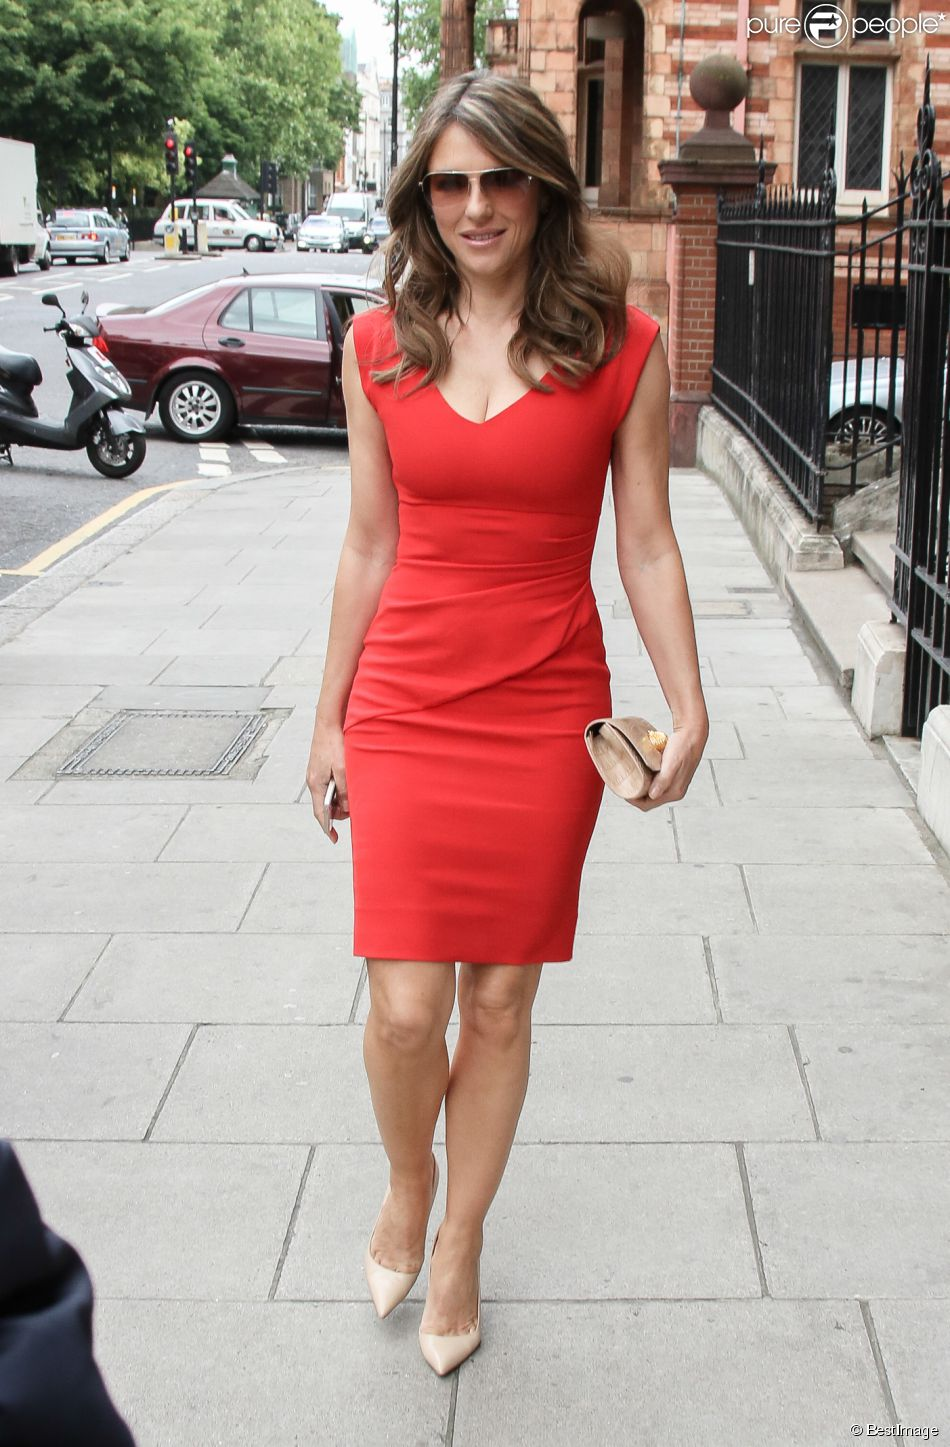 elizabeth hurley 50 ans et inchang e m me corps et m me style vestimentaire purepeople. Black Bedroom Furniture Sets. Home Design Ideas